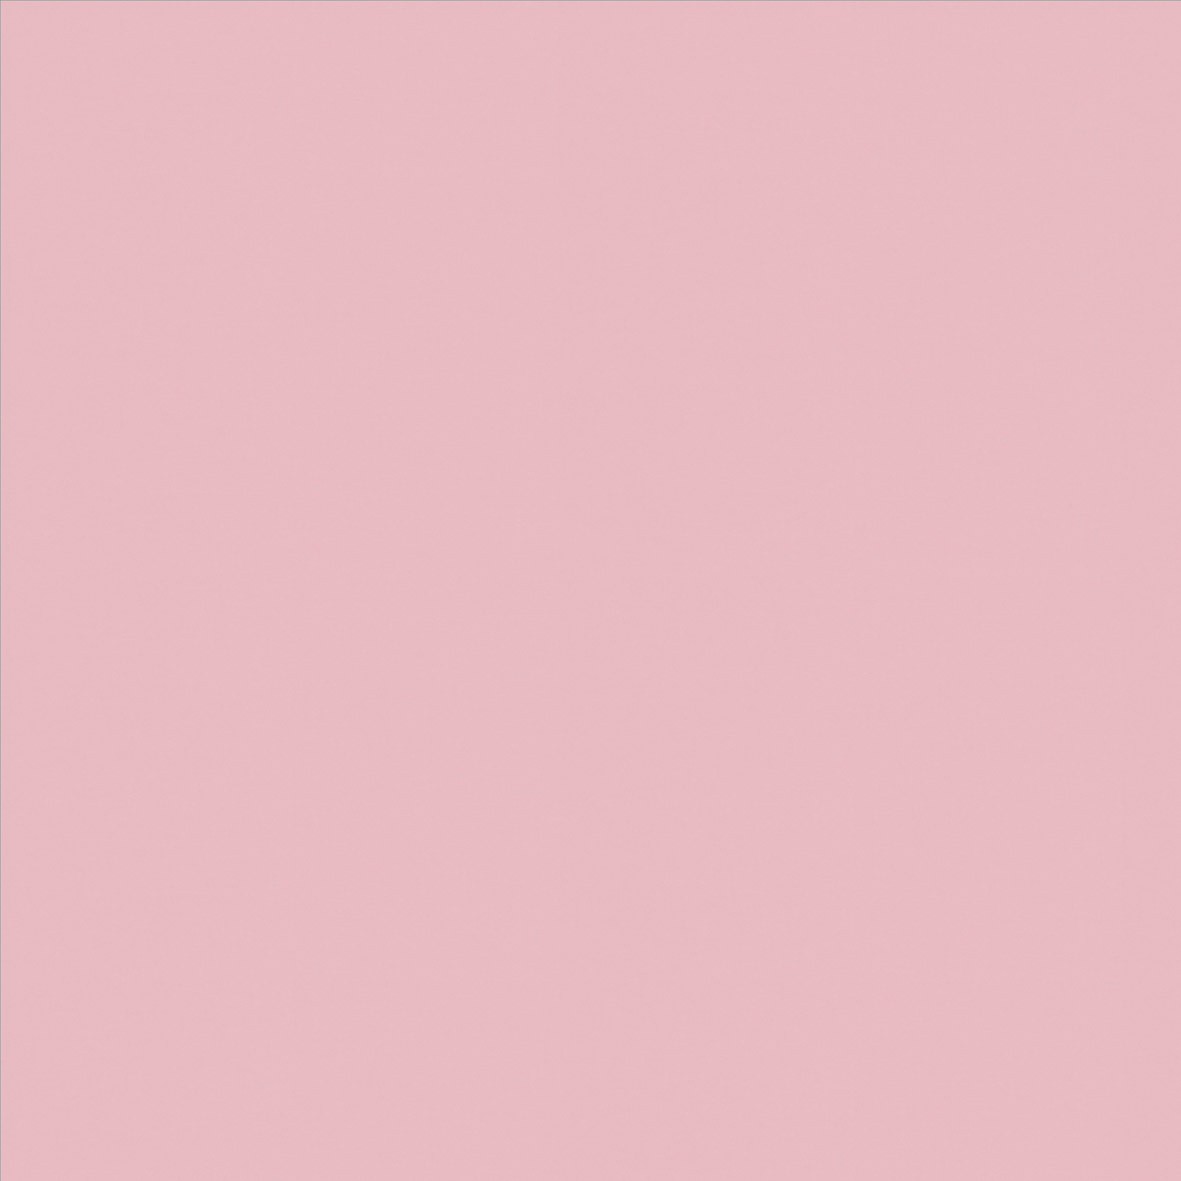 Roller_Swatch_Banlight_Duo_FR_Pink_RE0323